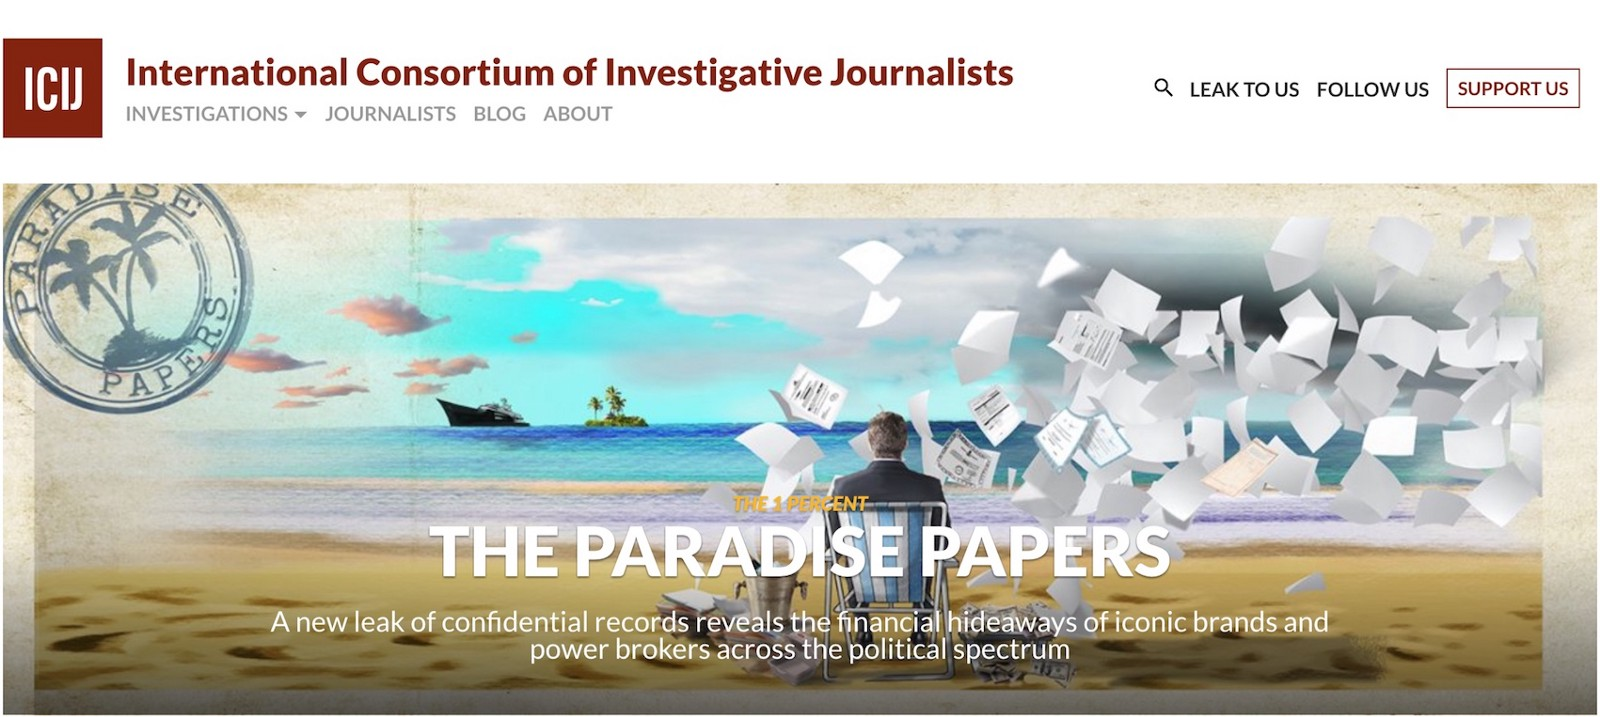 The Paradise Papers and why they're important